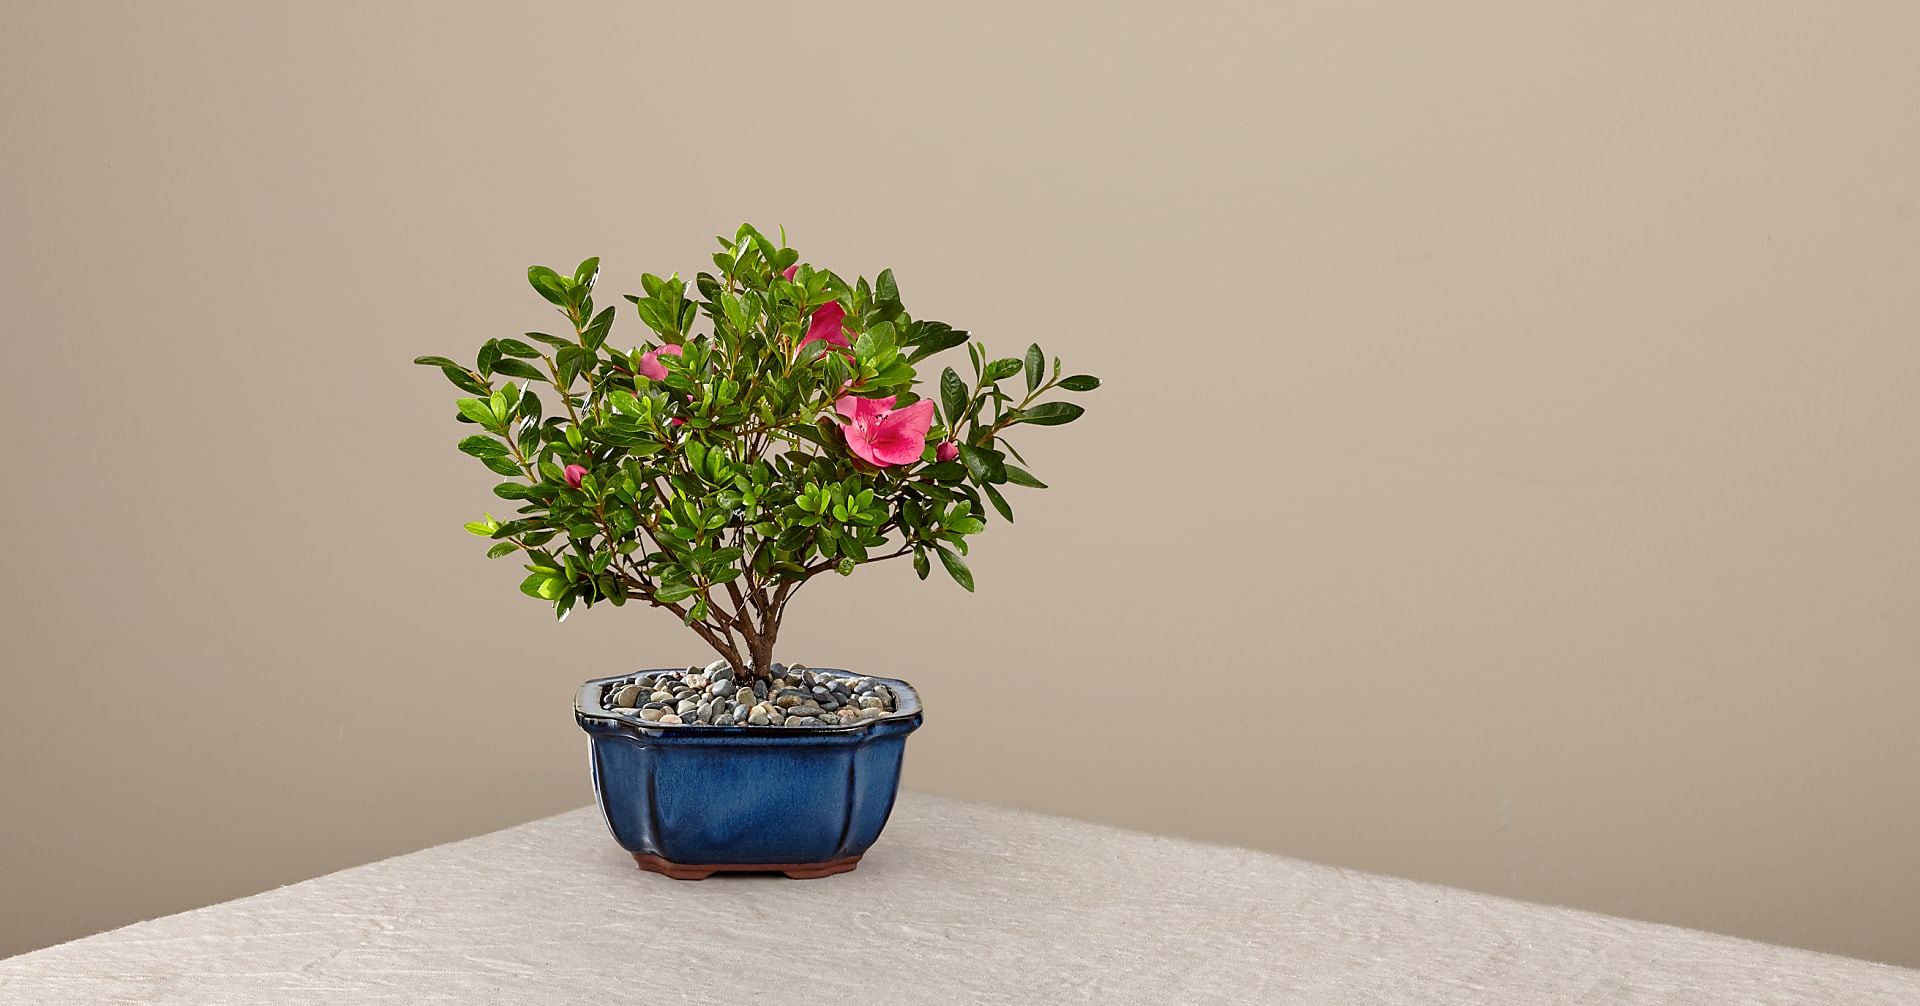 Blooming Azalea Bonsai - 8 inches - Image 1 Of 2